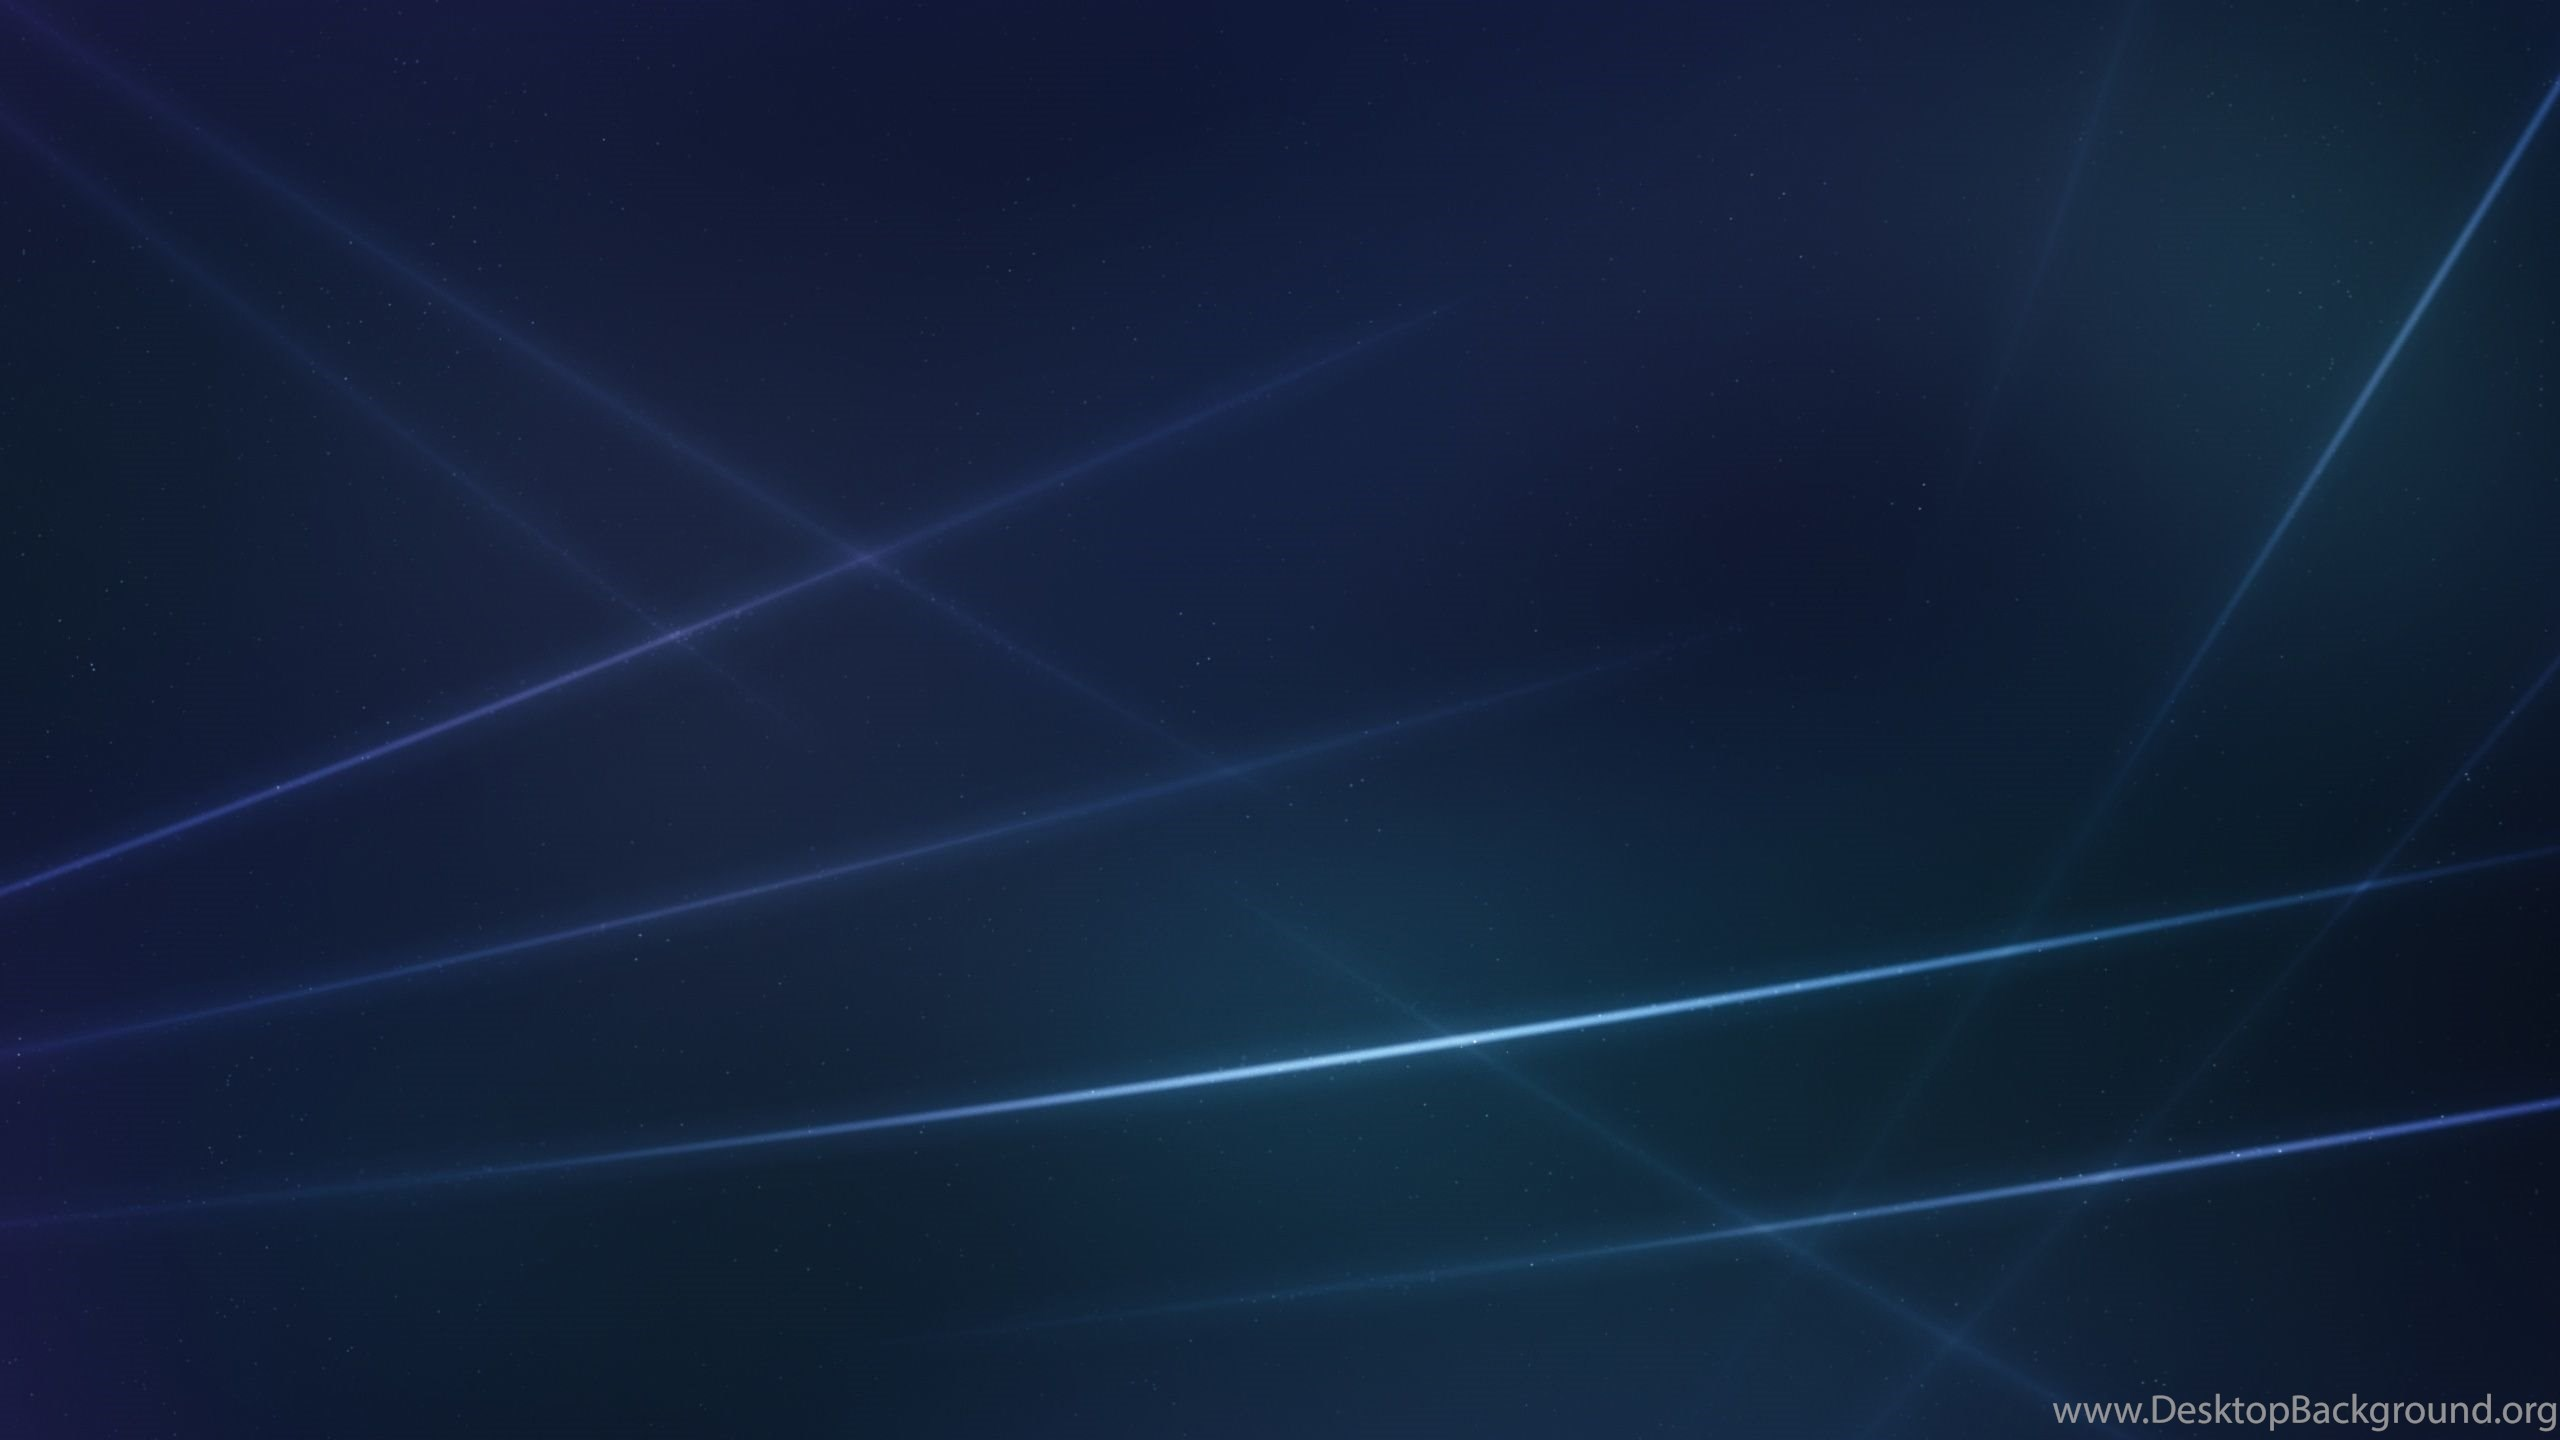 Light rays dark blue backgrounds hd wallpapers desktop - Dark background wallpaper hd ...